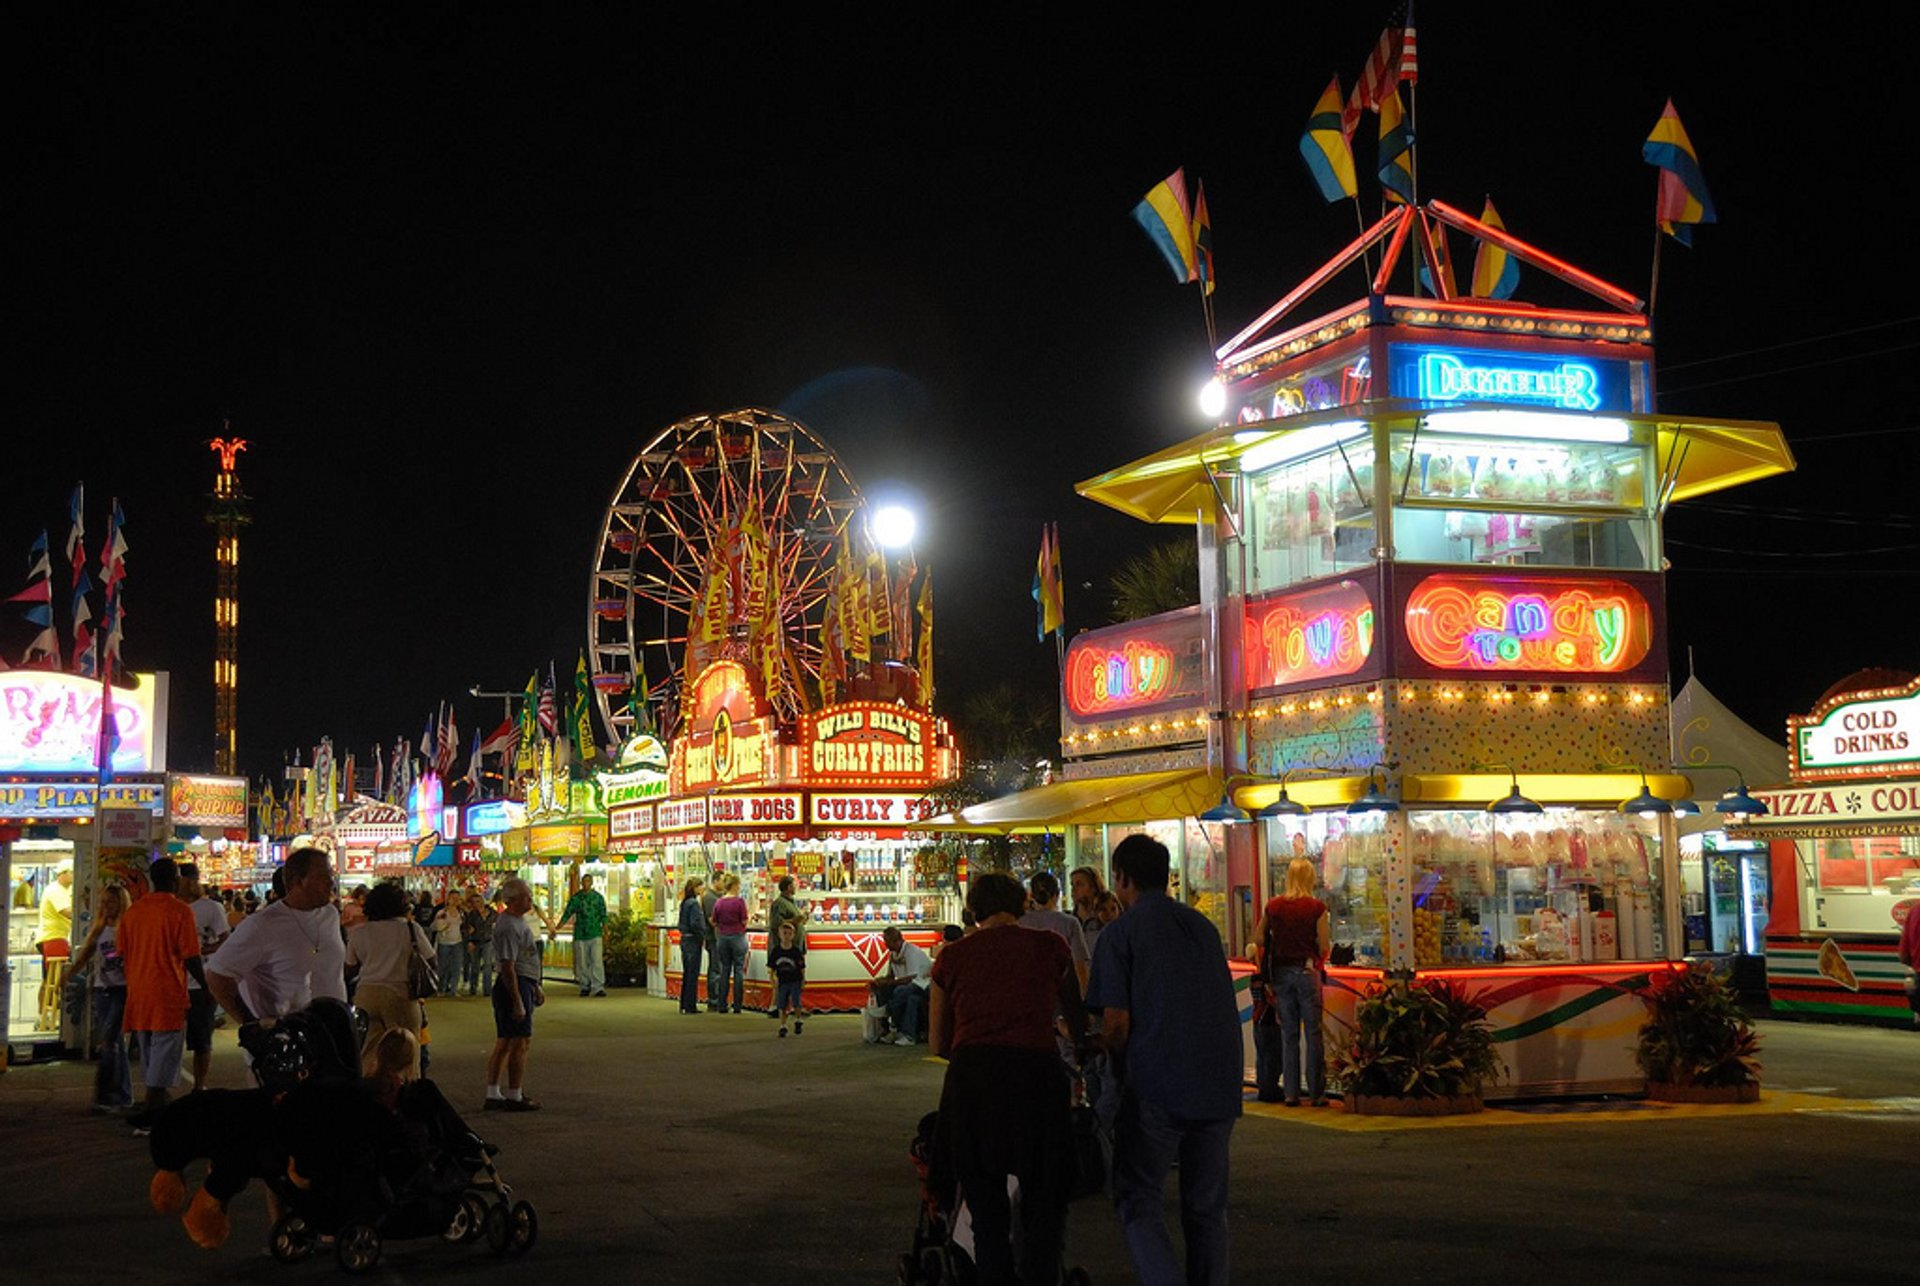 South Florida Fair in Florida - Best Season 2020